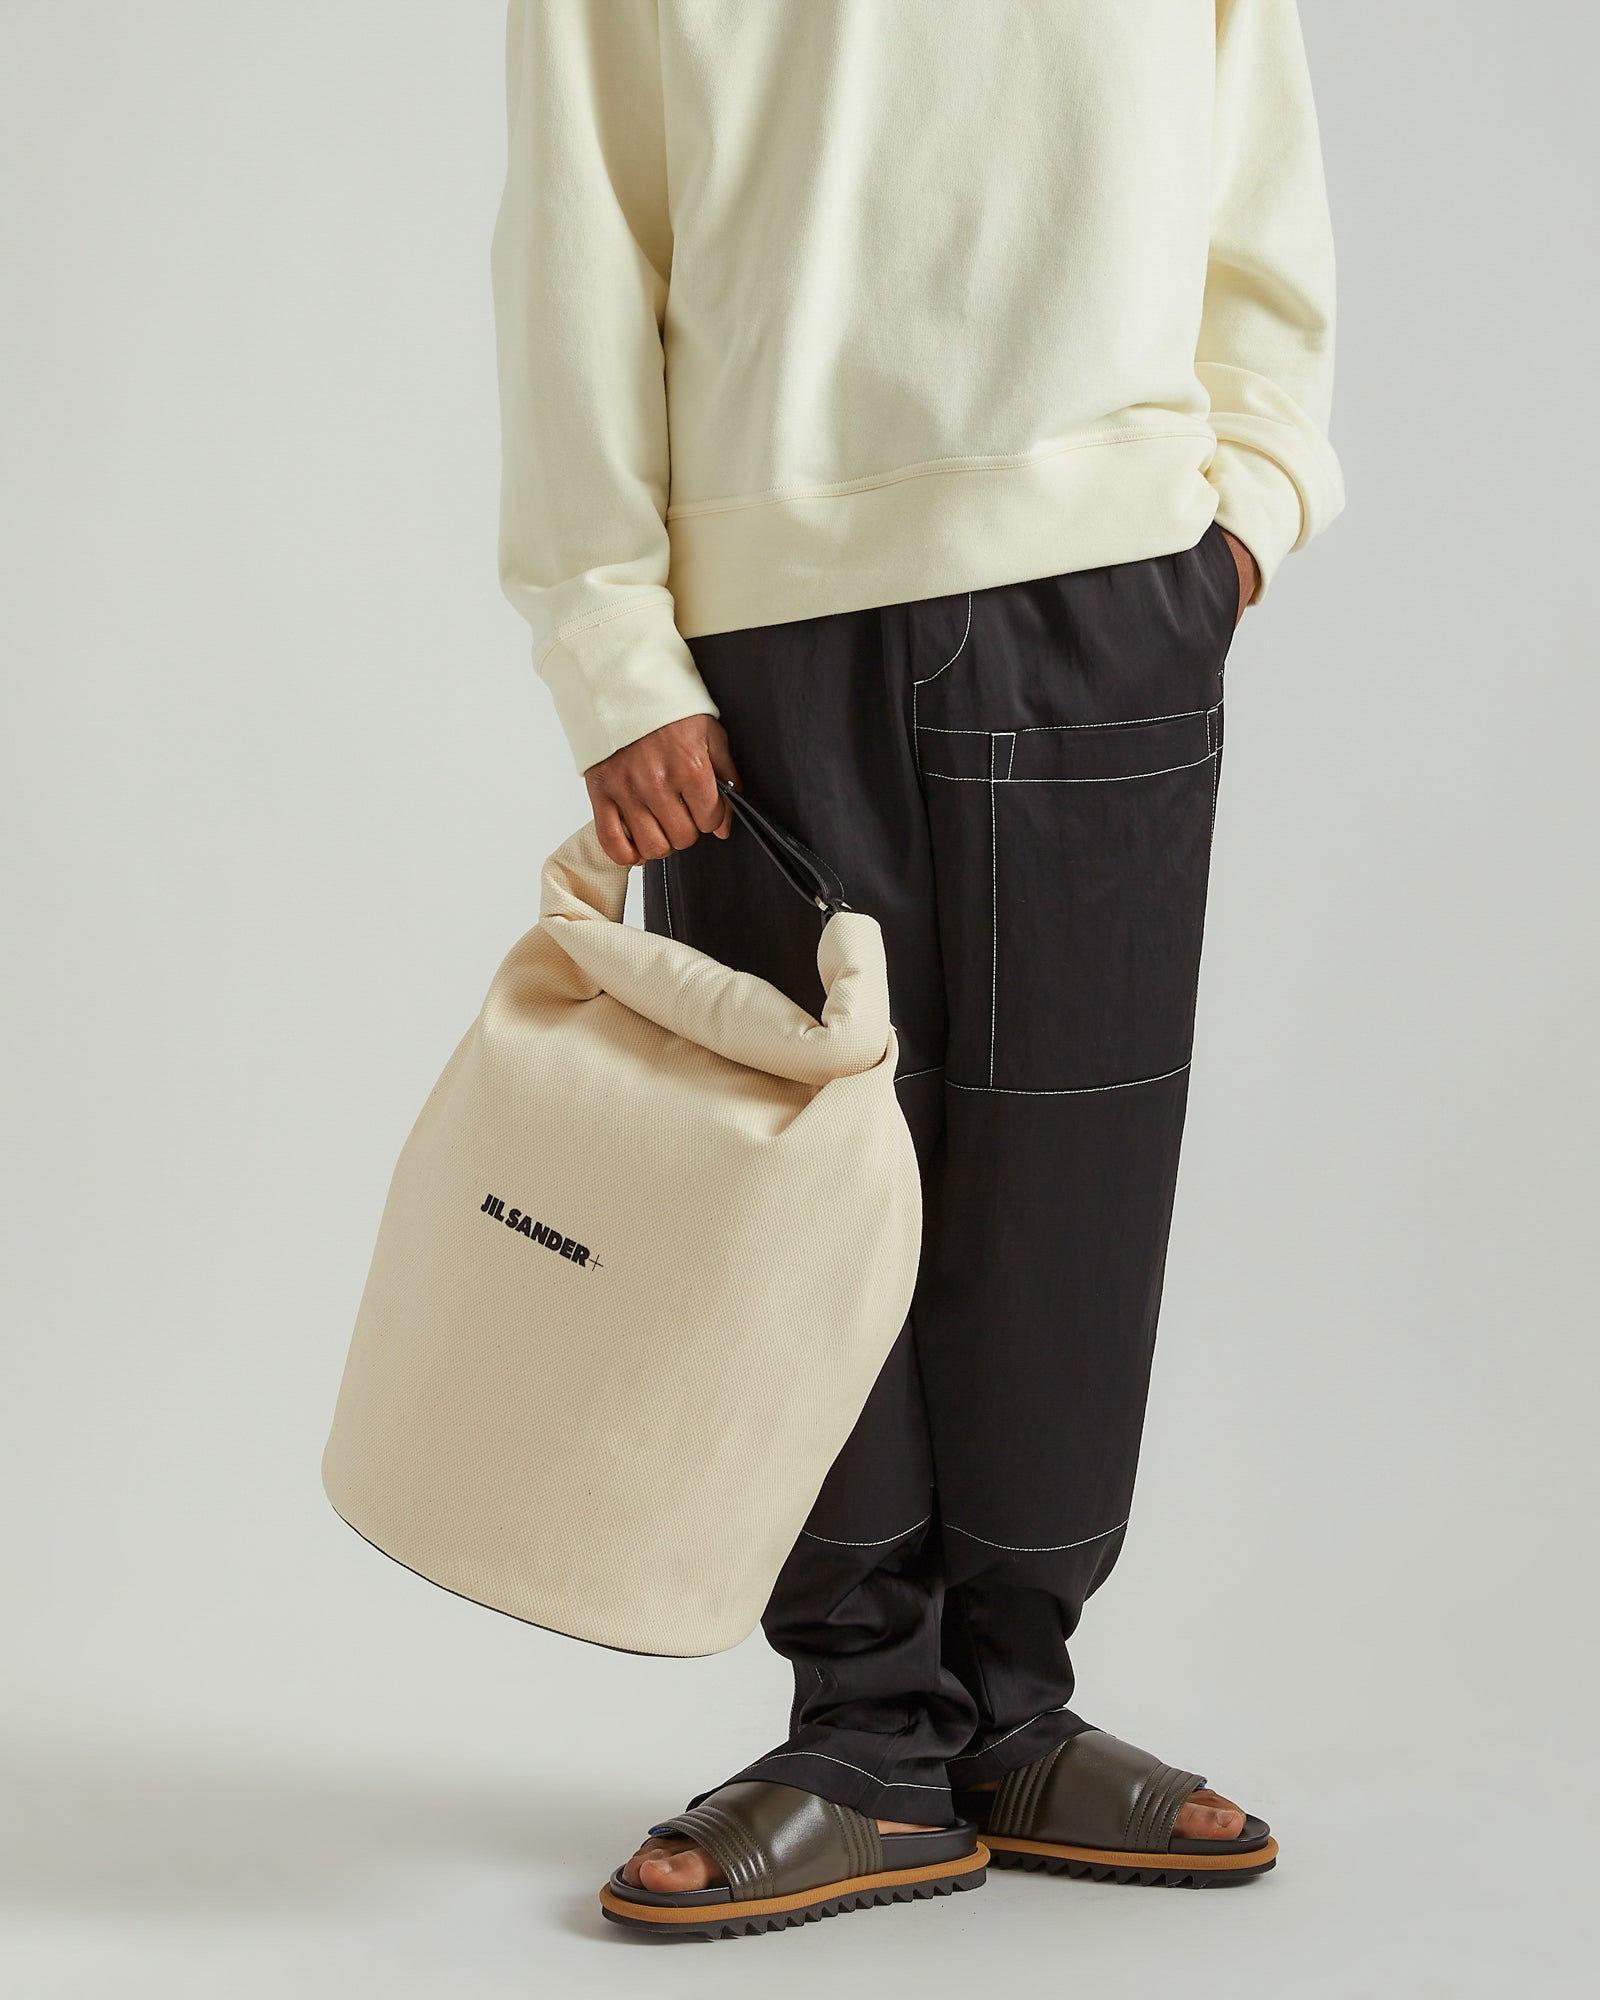 Medium Roll Duffle Bag in Light Beige